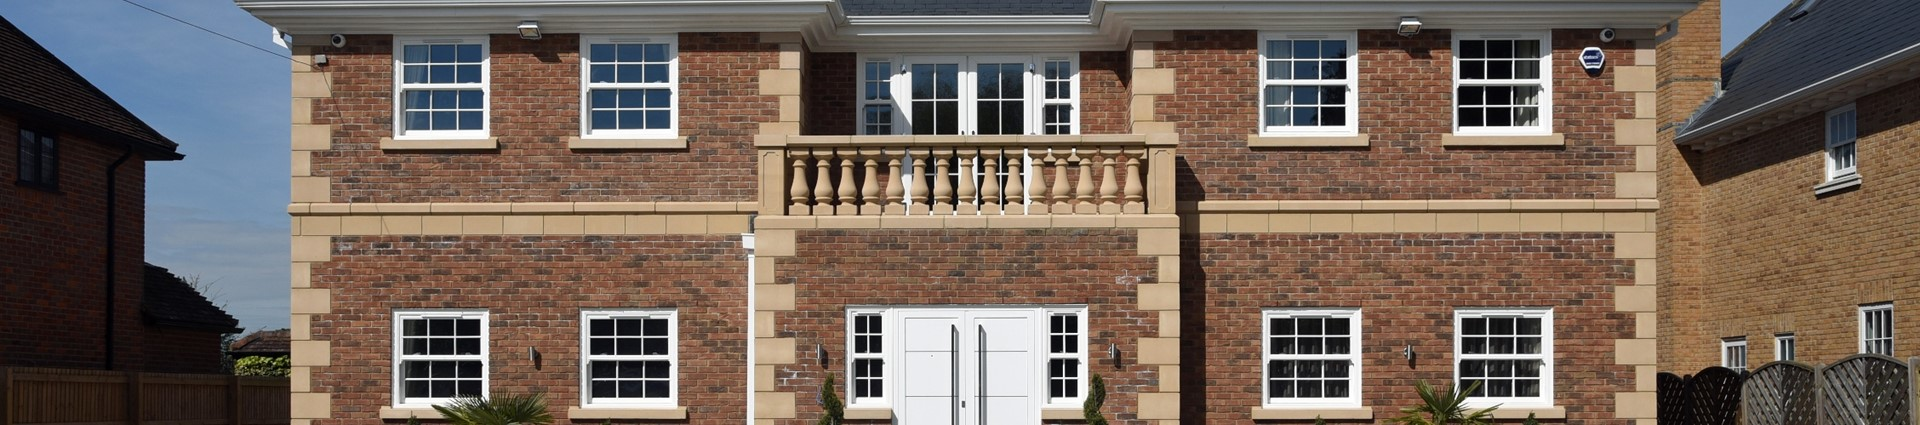 Luxury home cast stone development